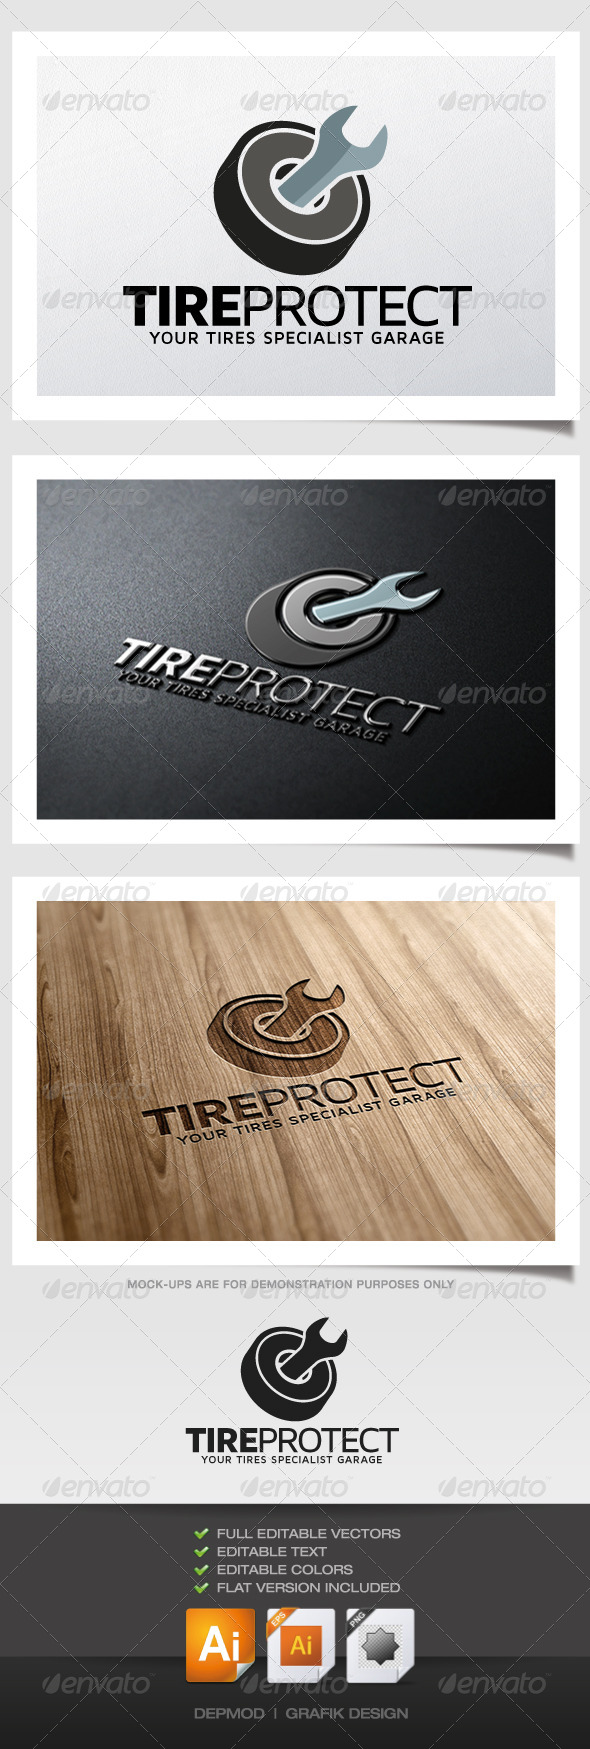 GraphicRiver Tire Protect Logo 5325633